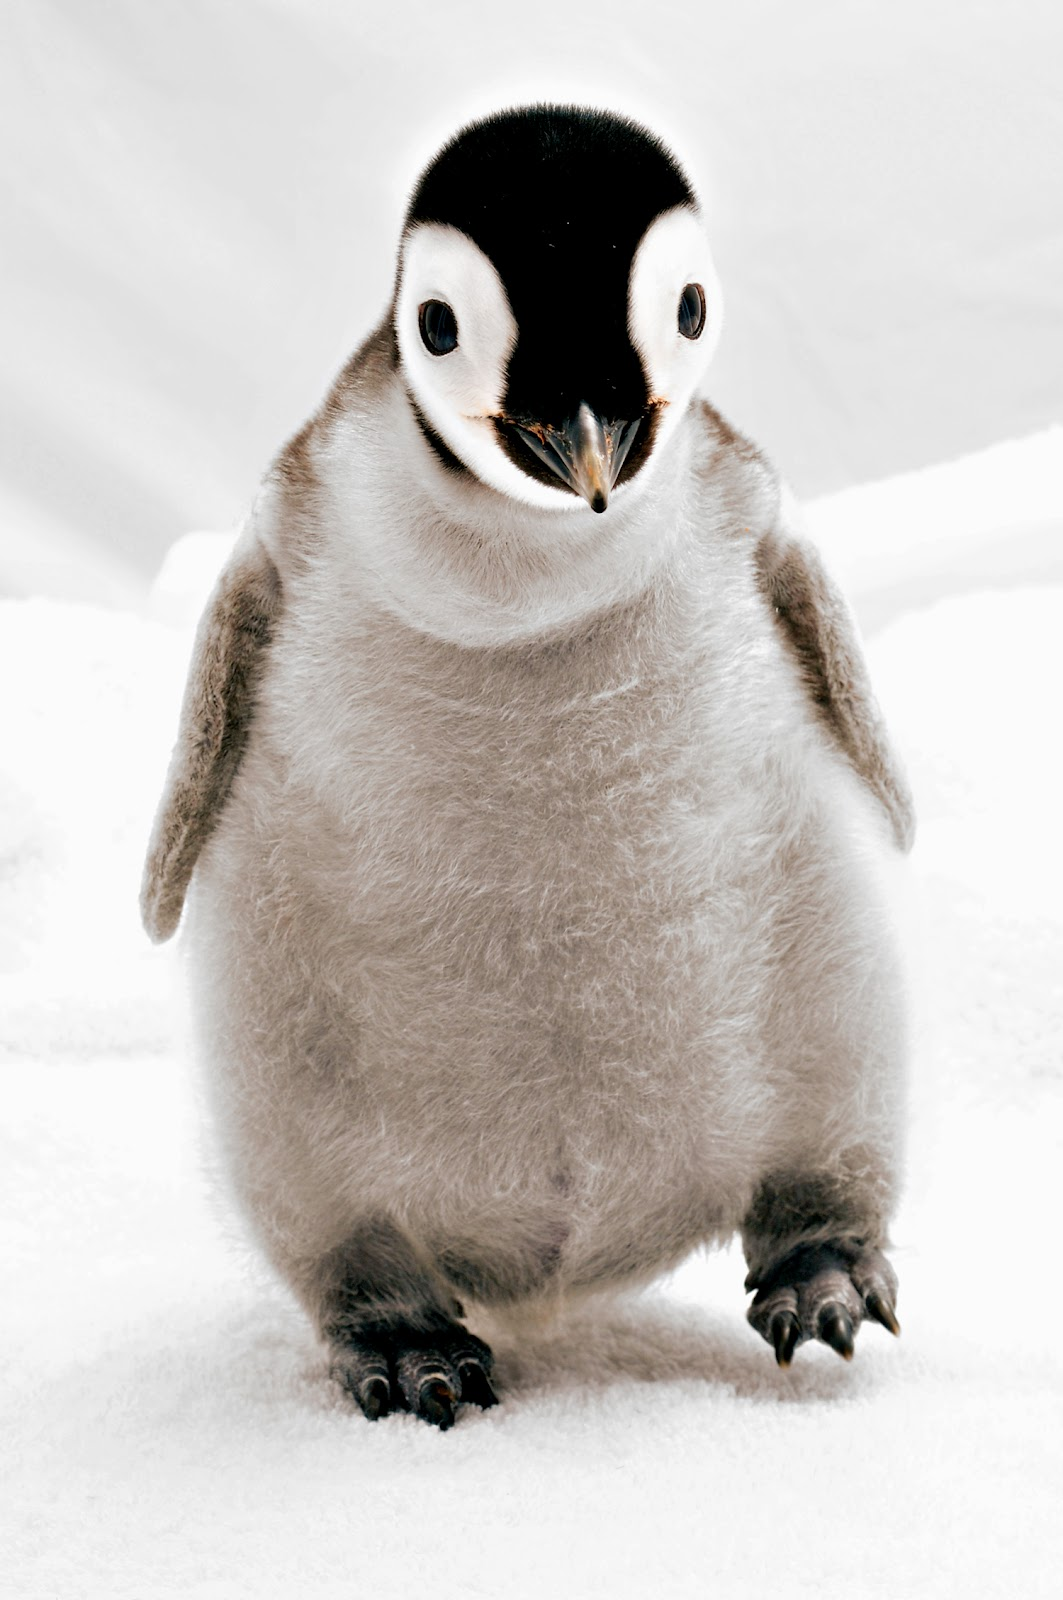 Cute penguins cute mighty pictures - Cute Penguins Cute Mighty Pictures